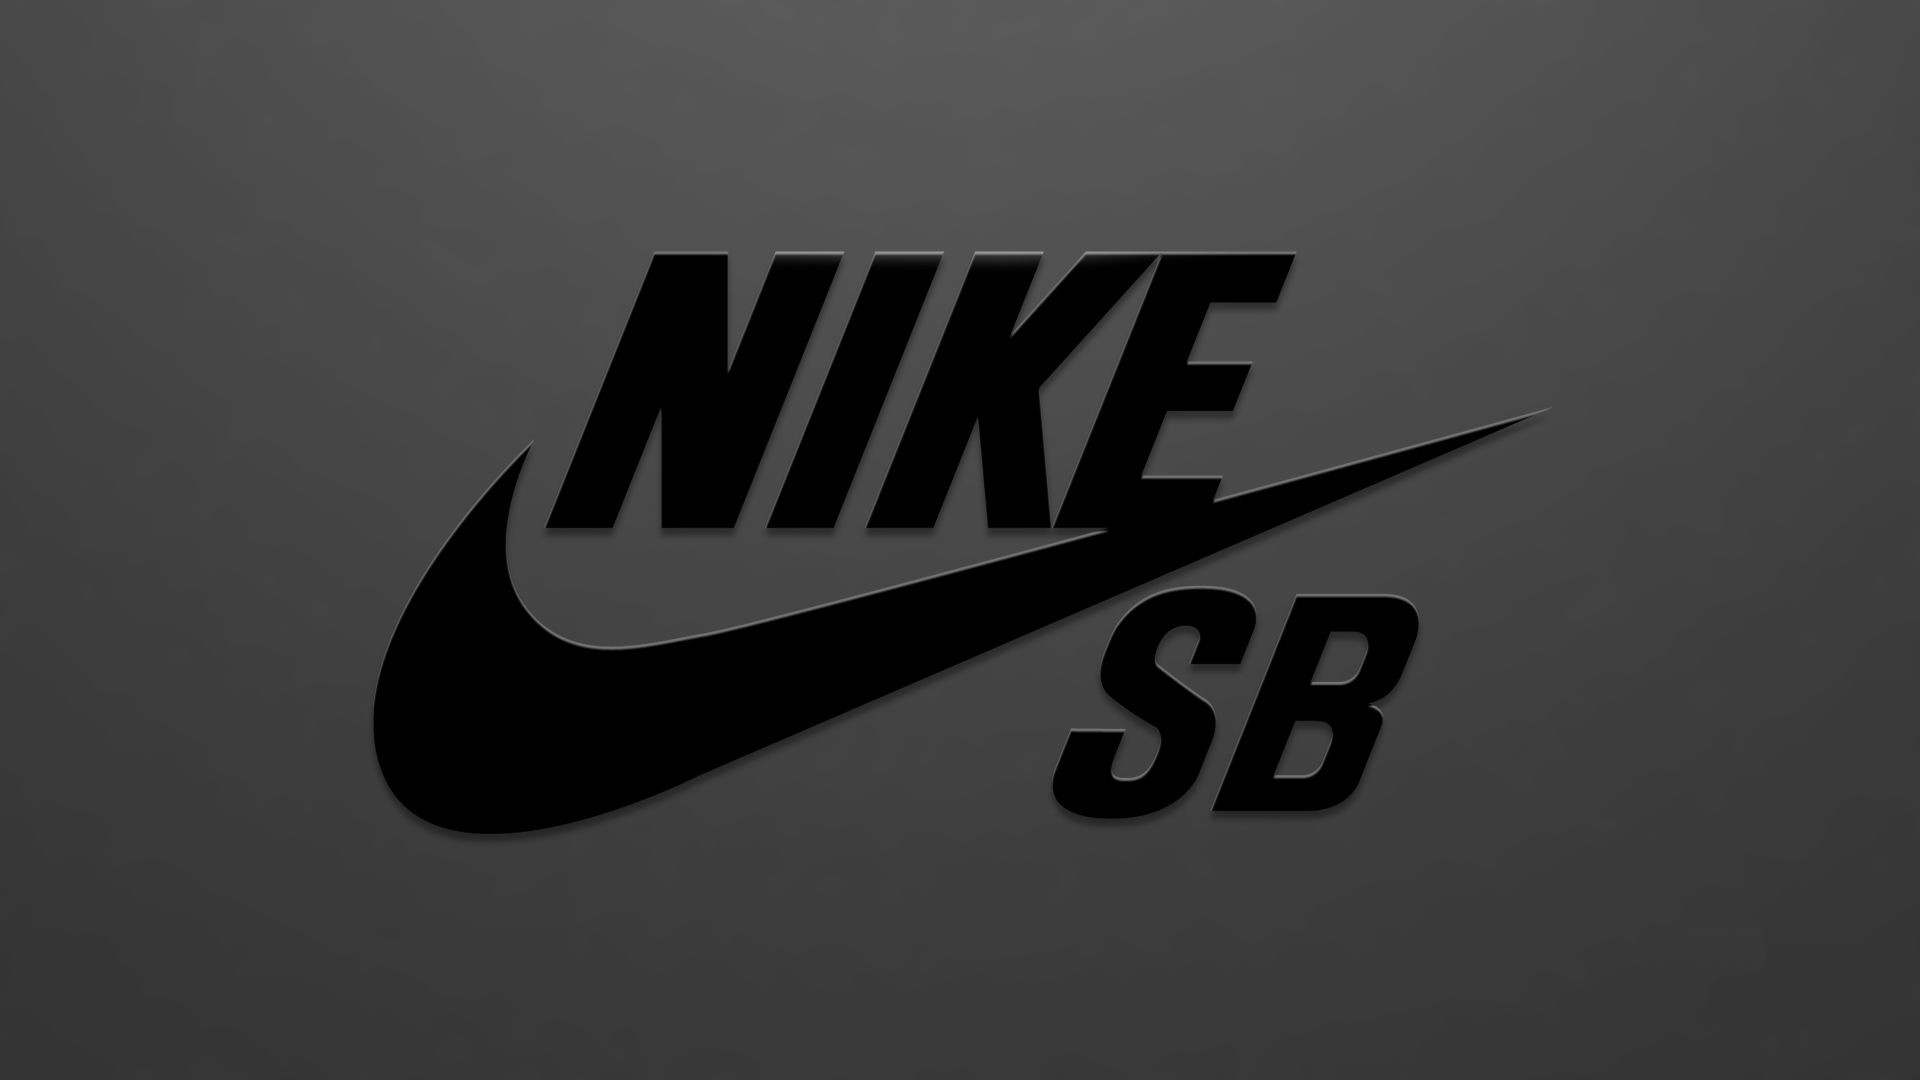 Nike wallpaper hd 1080p 75 images - Nike wallpaper hd ...